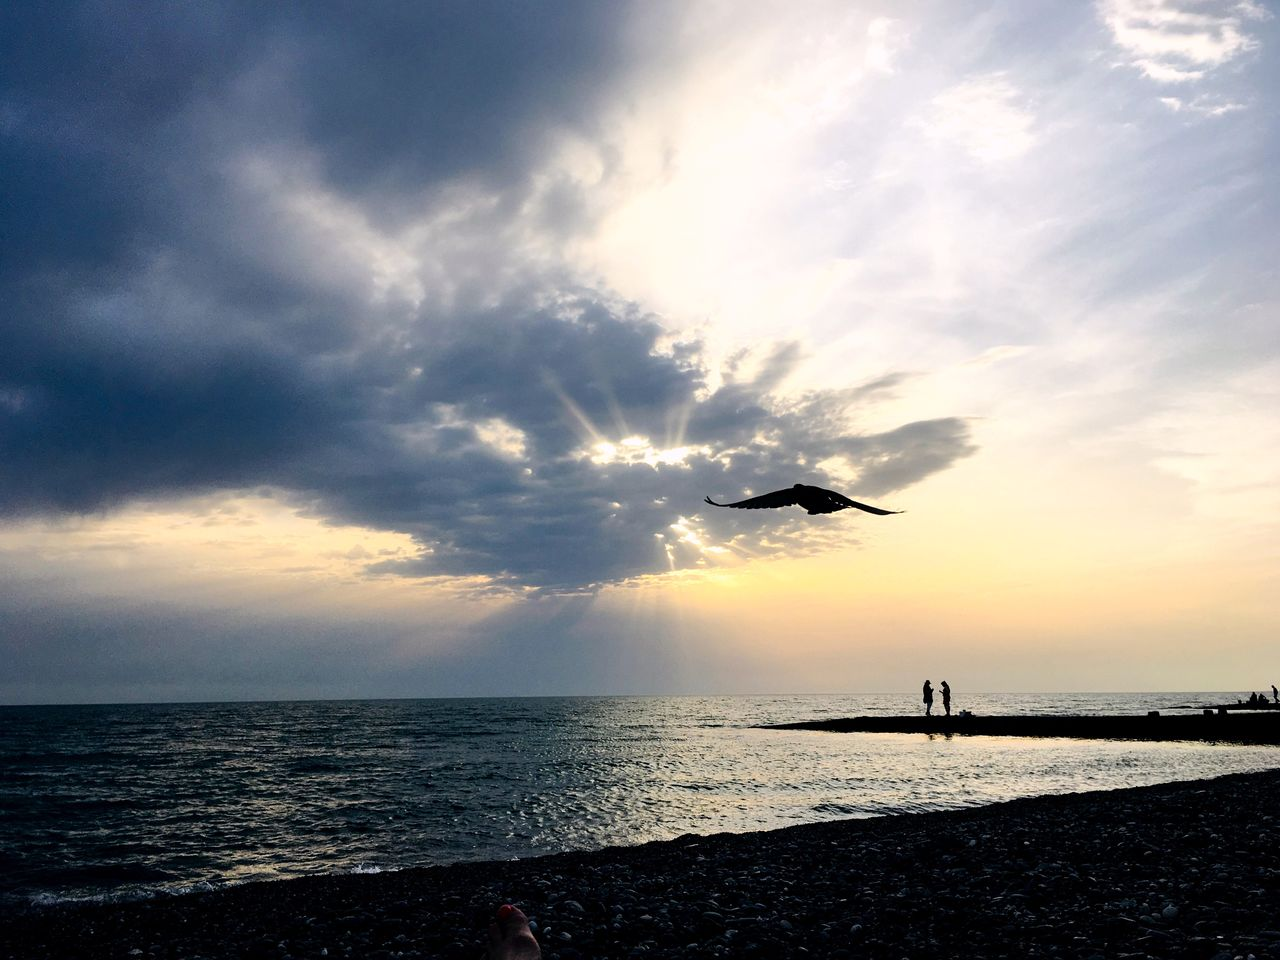 sky, water, sea, cloud - sky, horizon over water, sunset, horizon, scenics - nature, beauty in nature, silhouette, nature, animal themes, flying, animal, one animal, land, tranquil scene, beach, tranquility, outdoors, sun